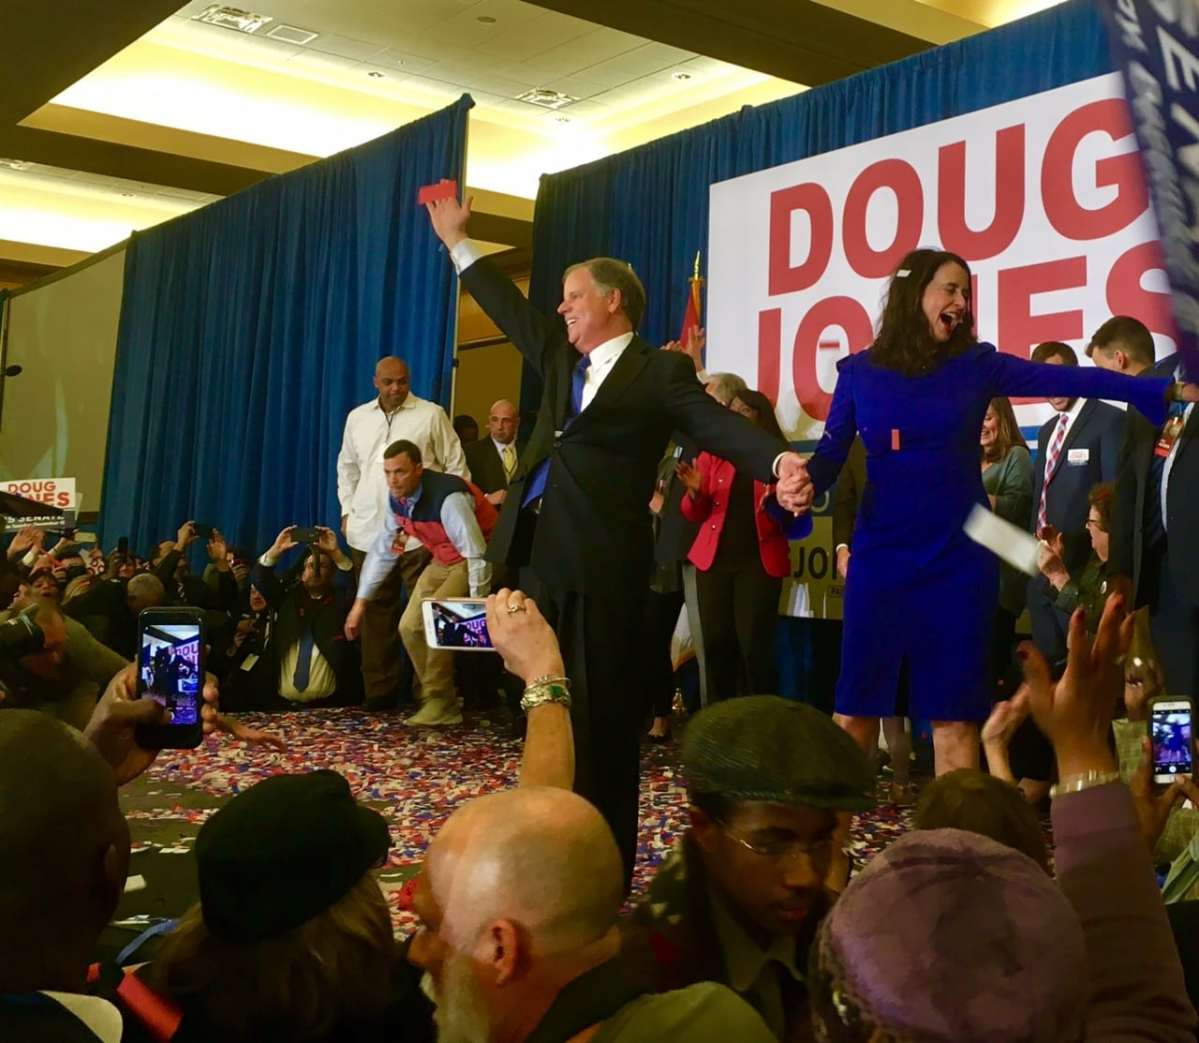 Birmingham, should Doug Jones run for president? The Internet wants to know.